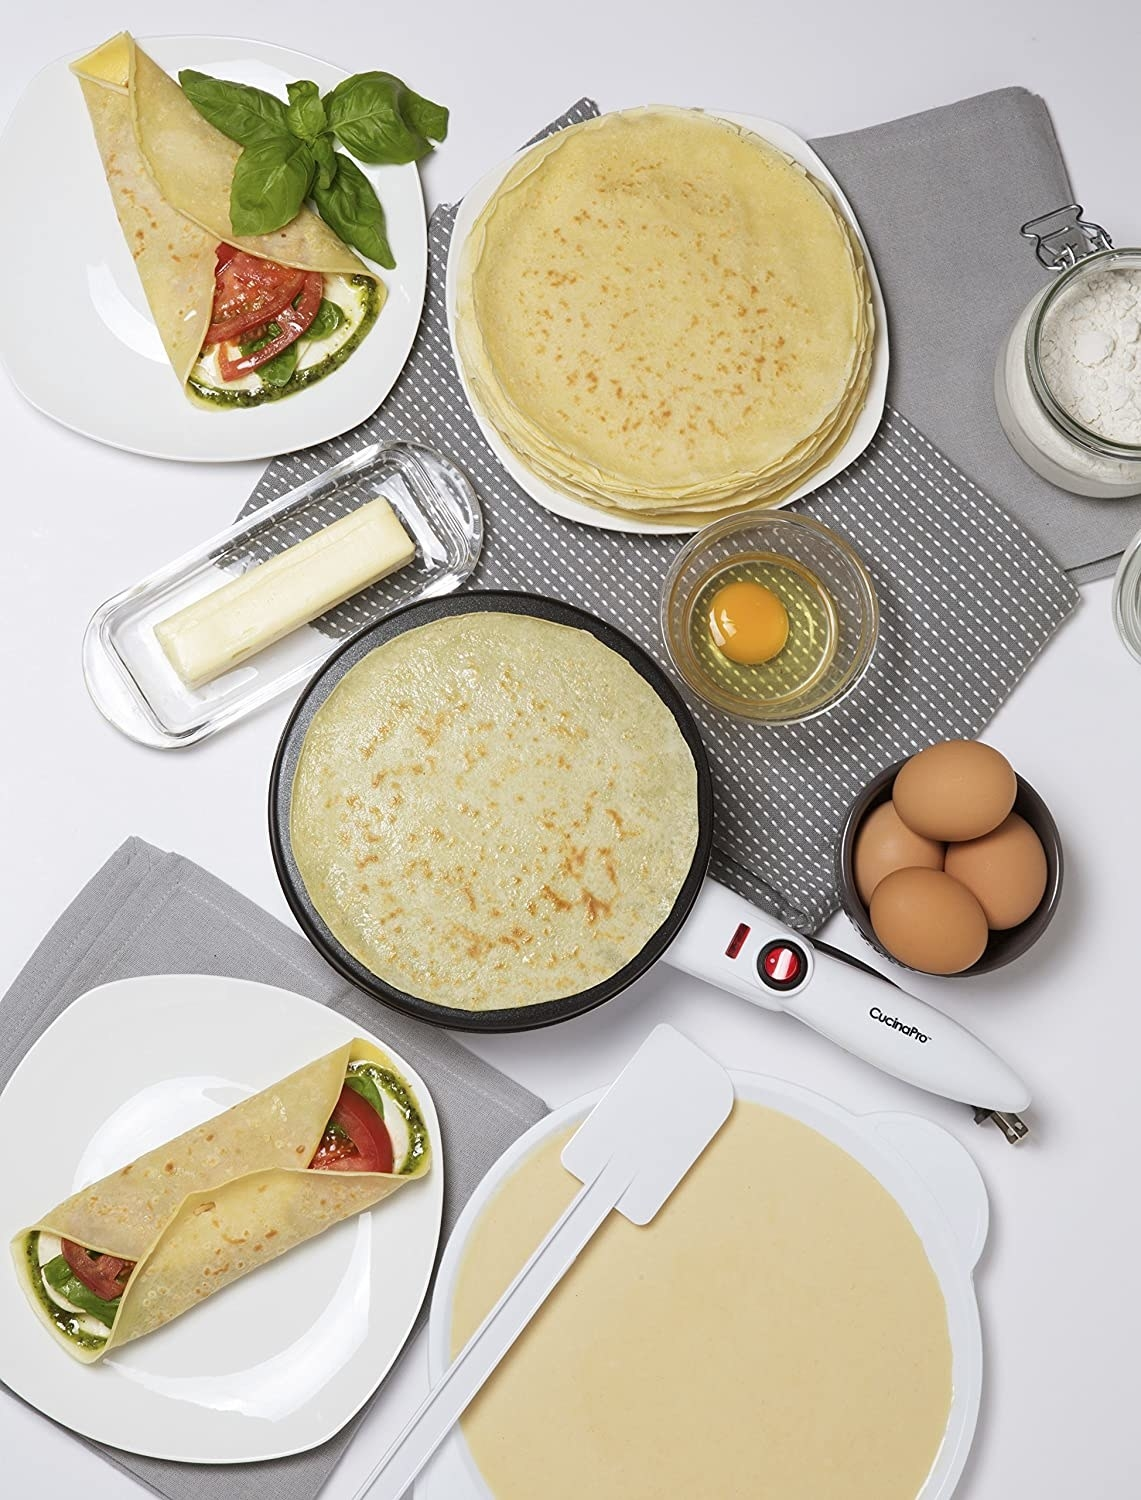 a table with crepe wraps, a plate of batter, eggs, the crepe maker, butter, and some crepes.